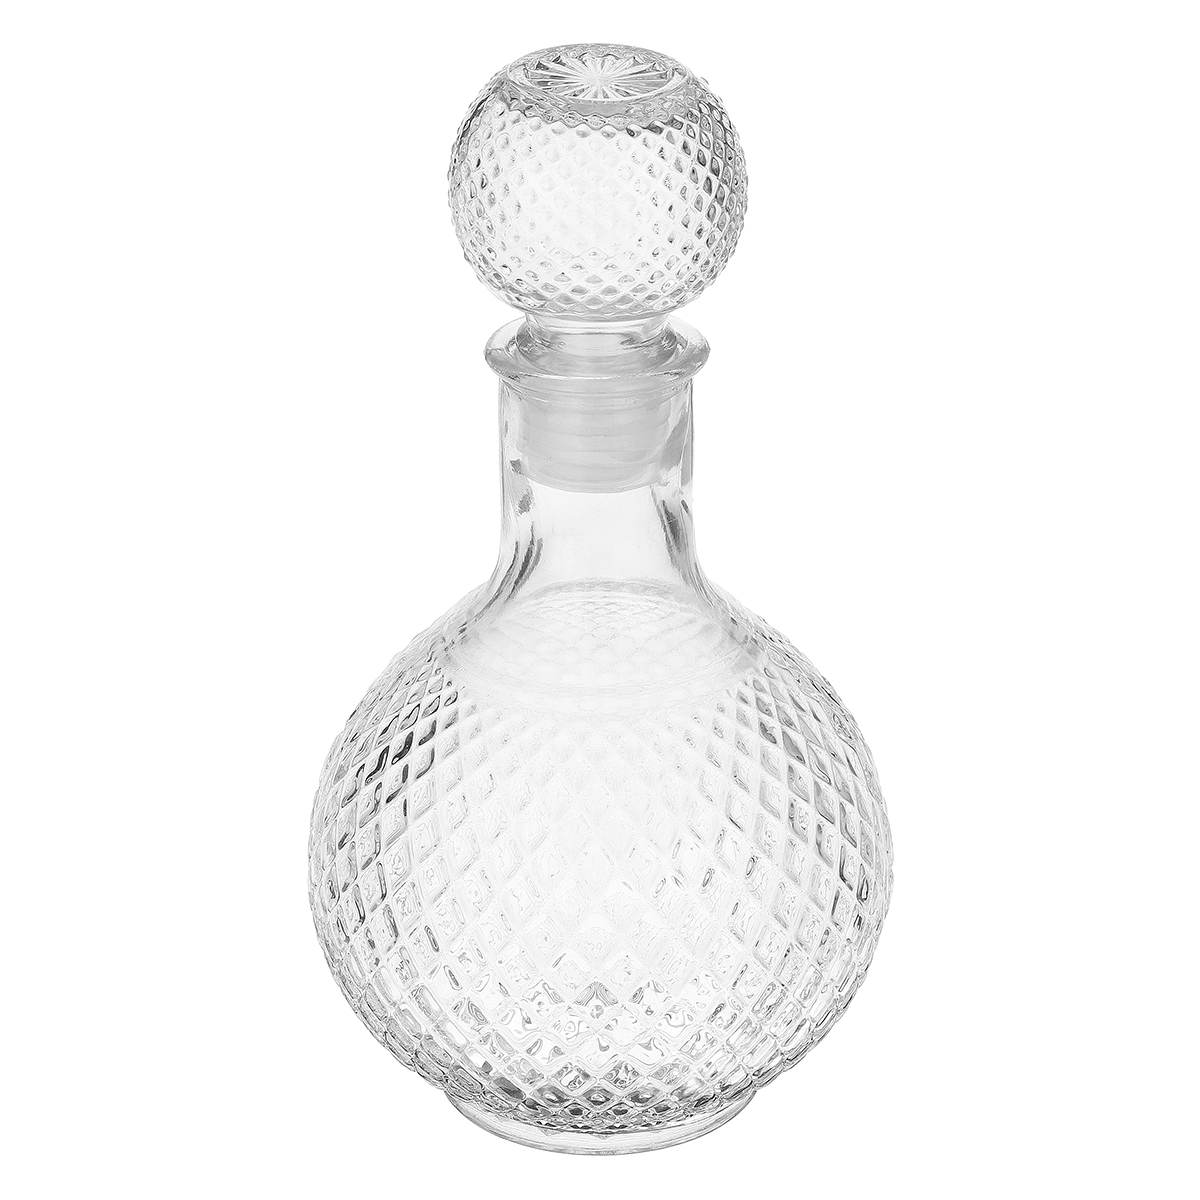 1000ml Vintage Decanter Glass Liquor Whiskey Crystal Bottles Wine Stopper Scotch Wine Decanter